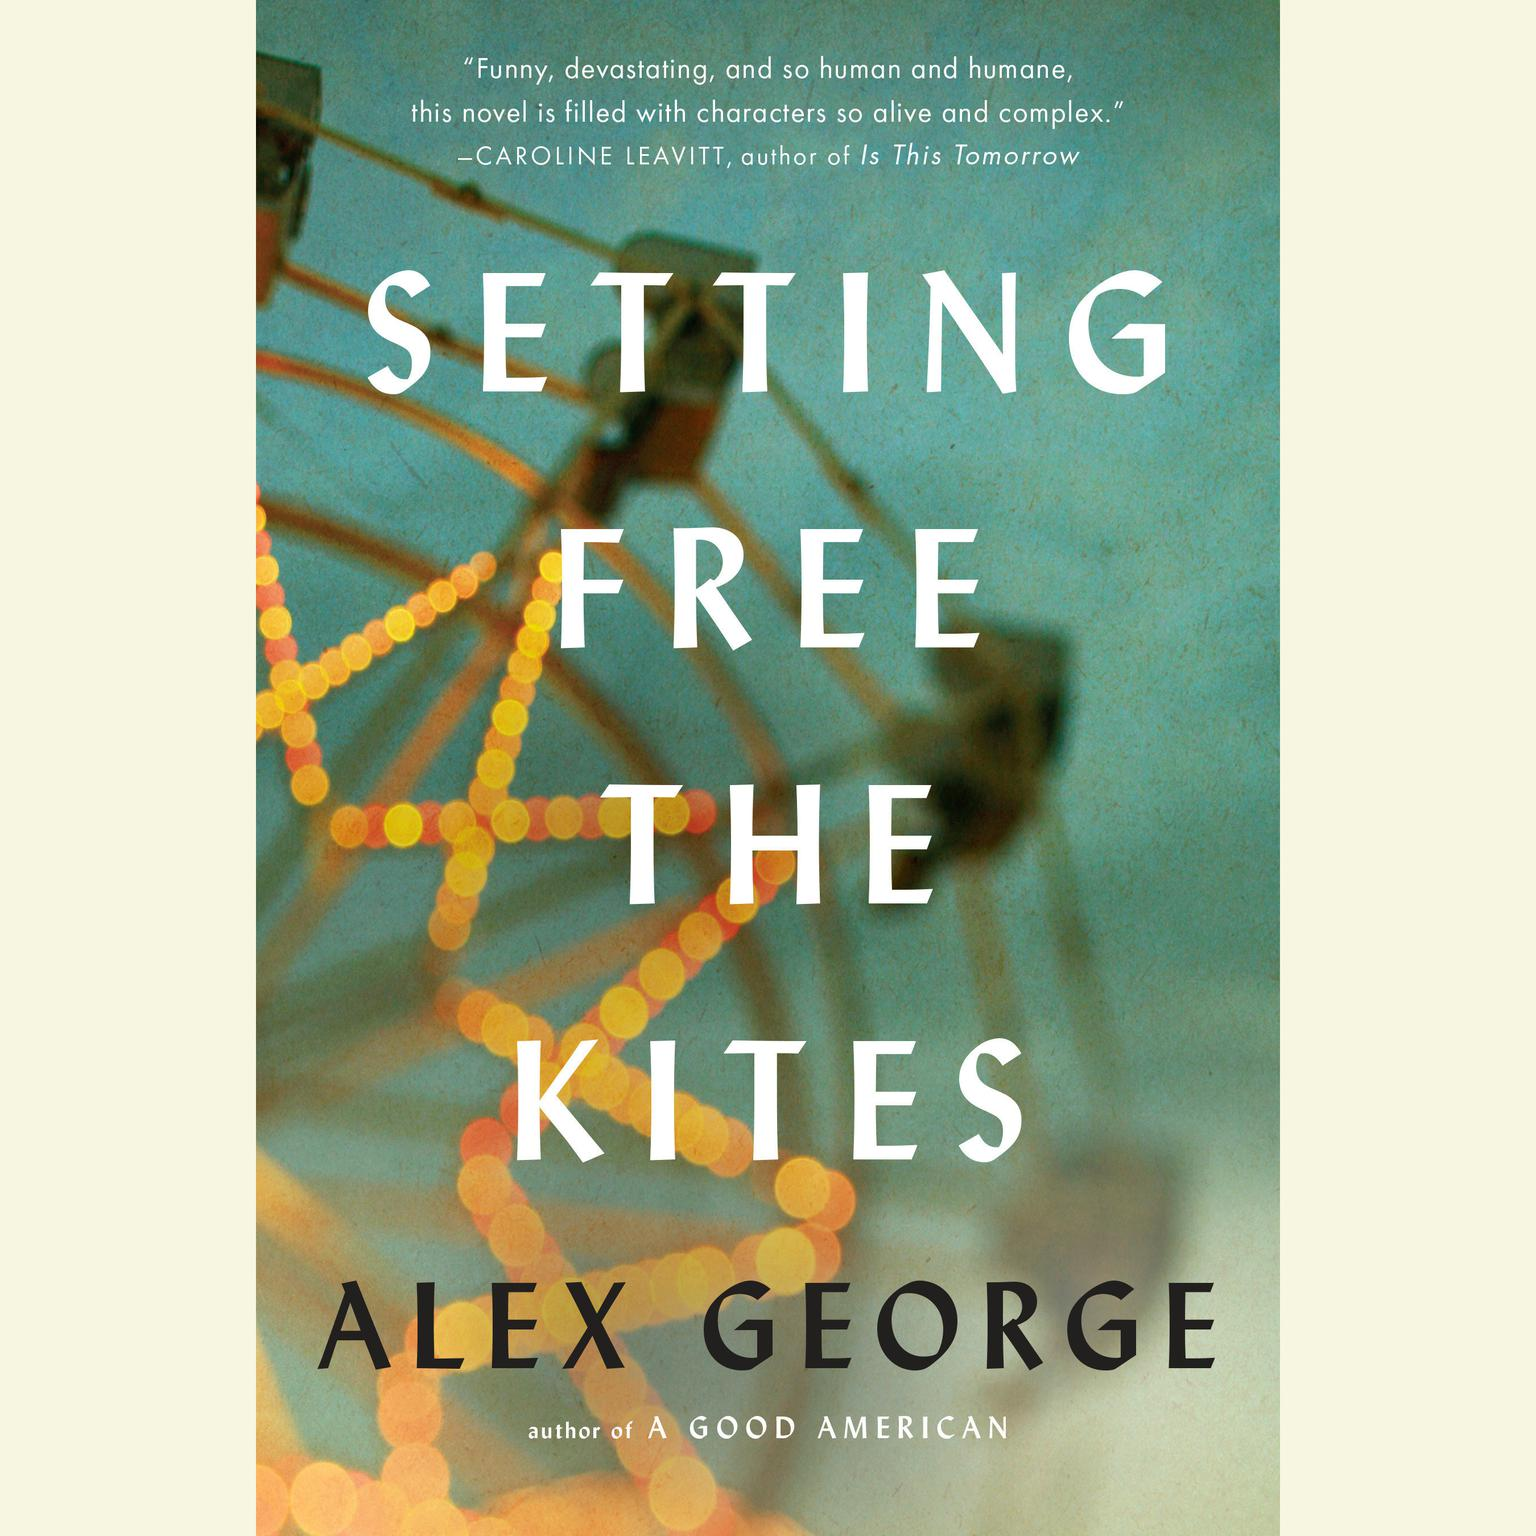 Printable Setting Free the Kites Audiobook Cover Art